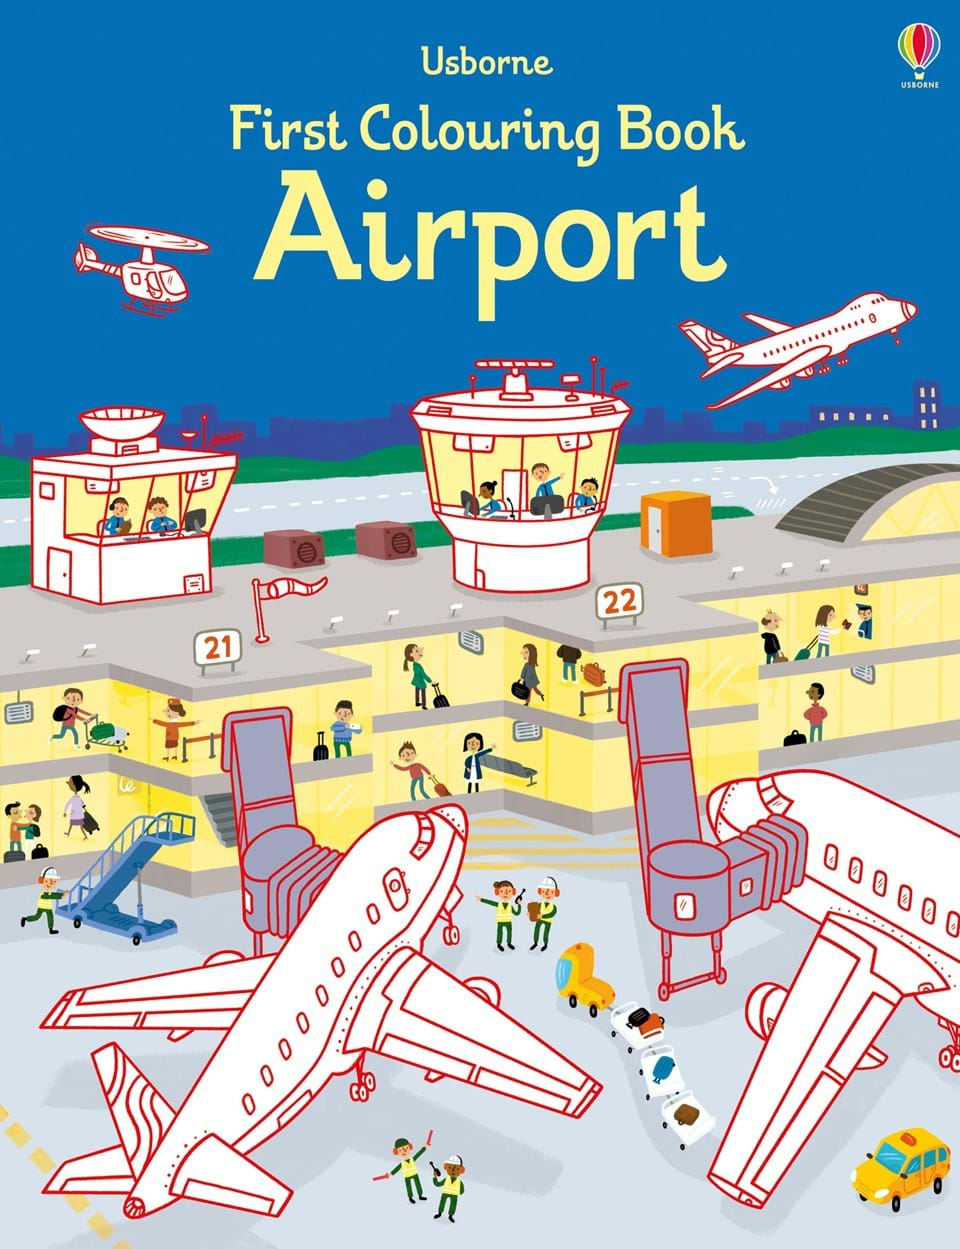 Airport enhancing the tourist industry through light